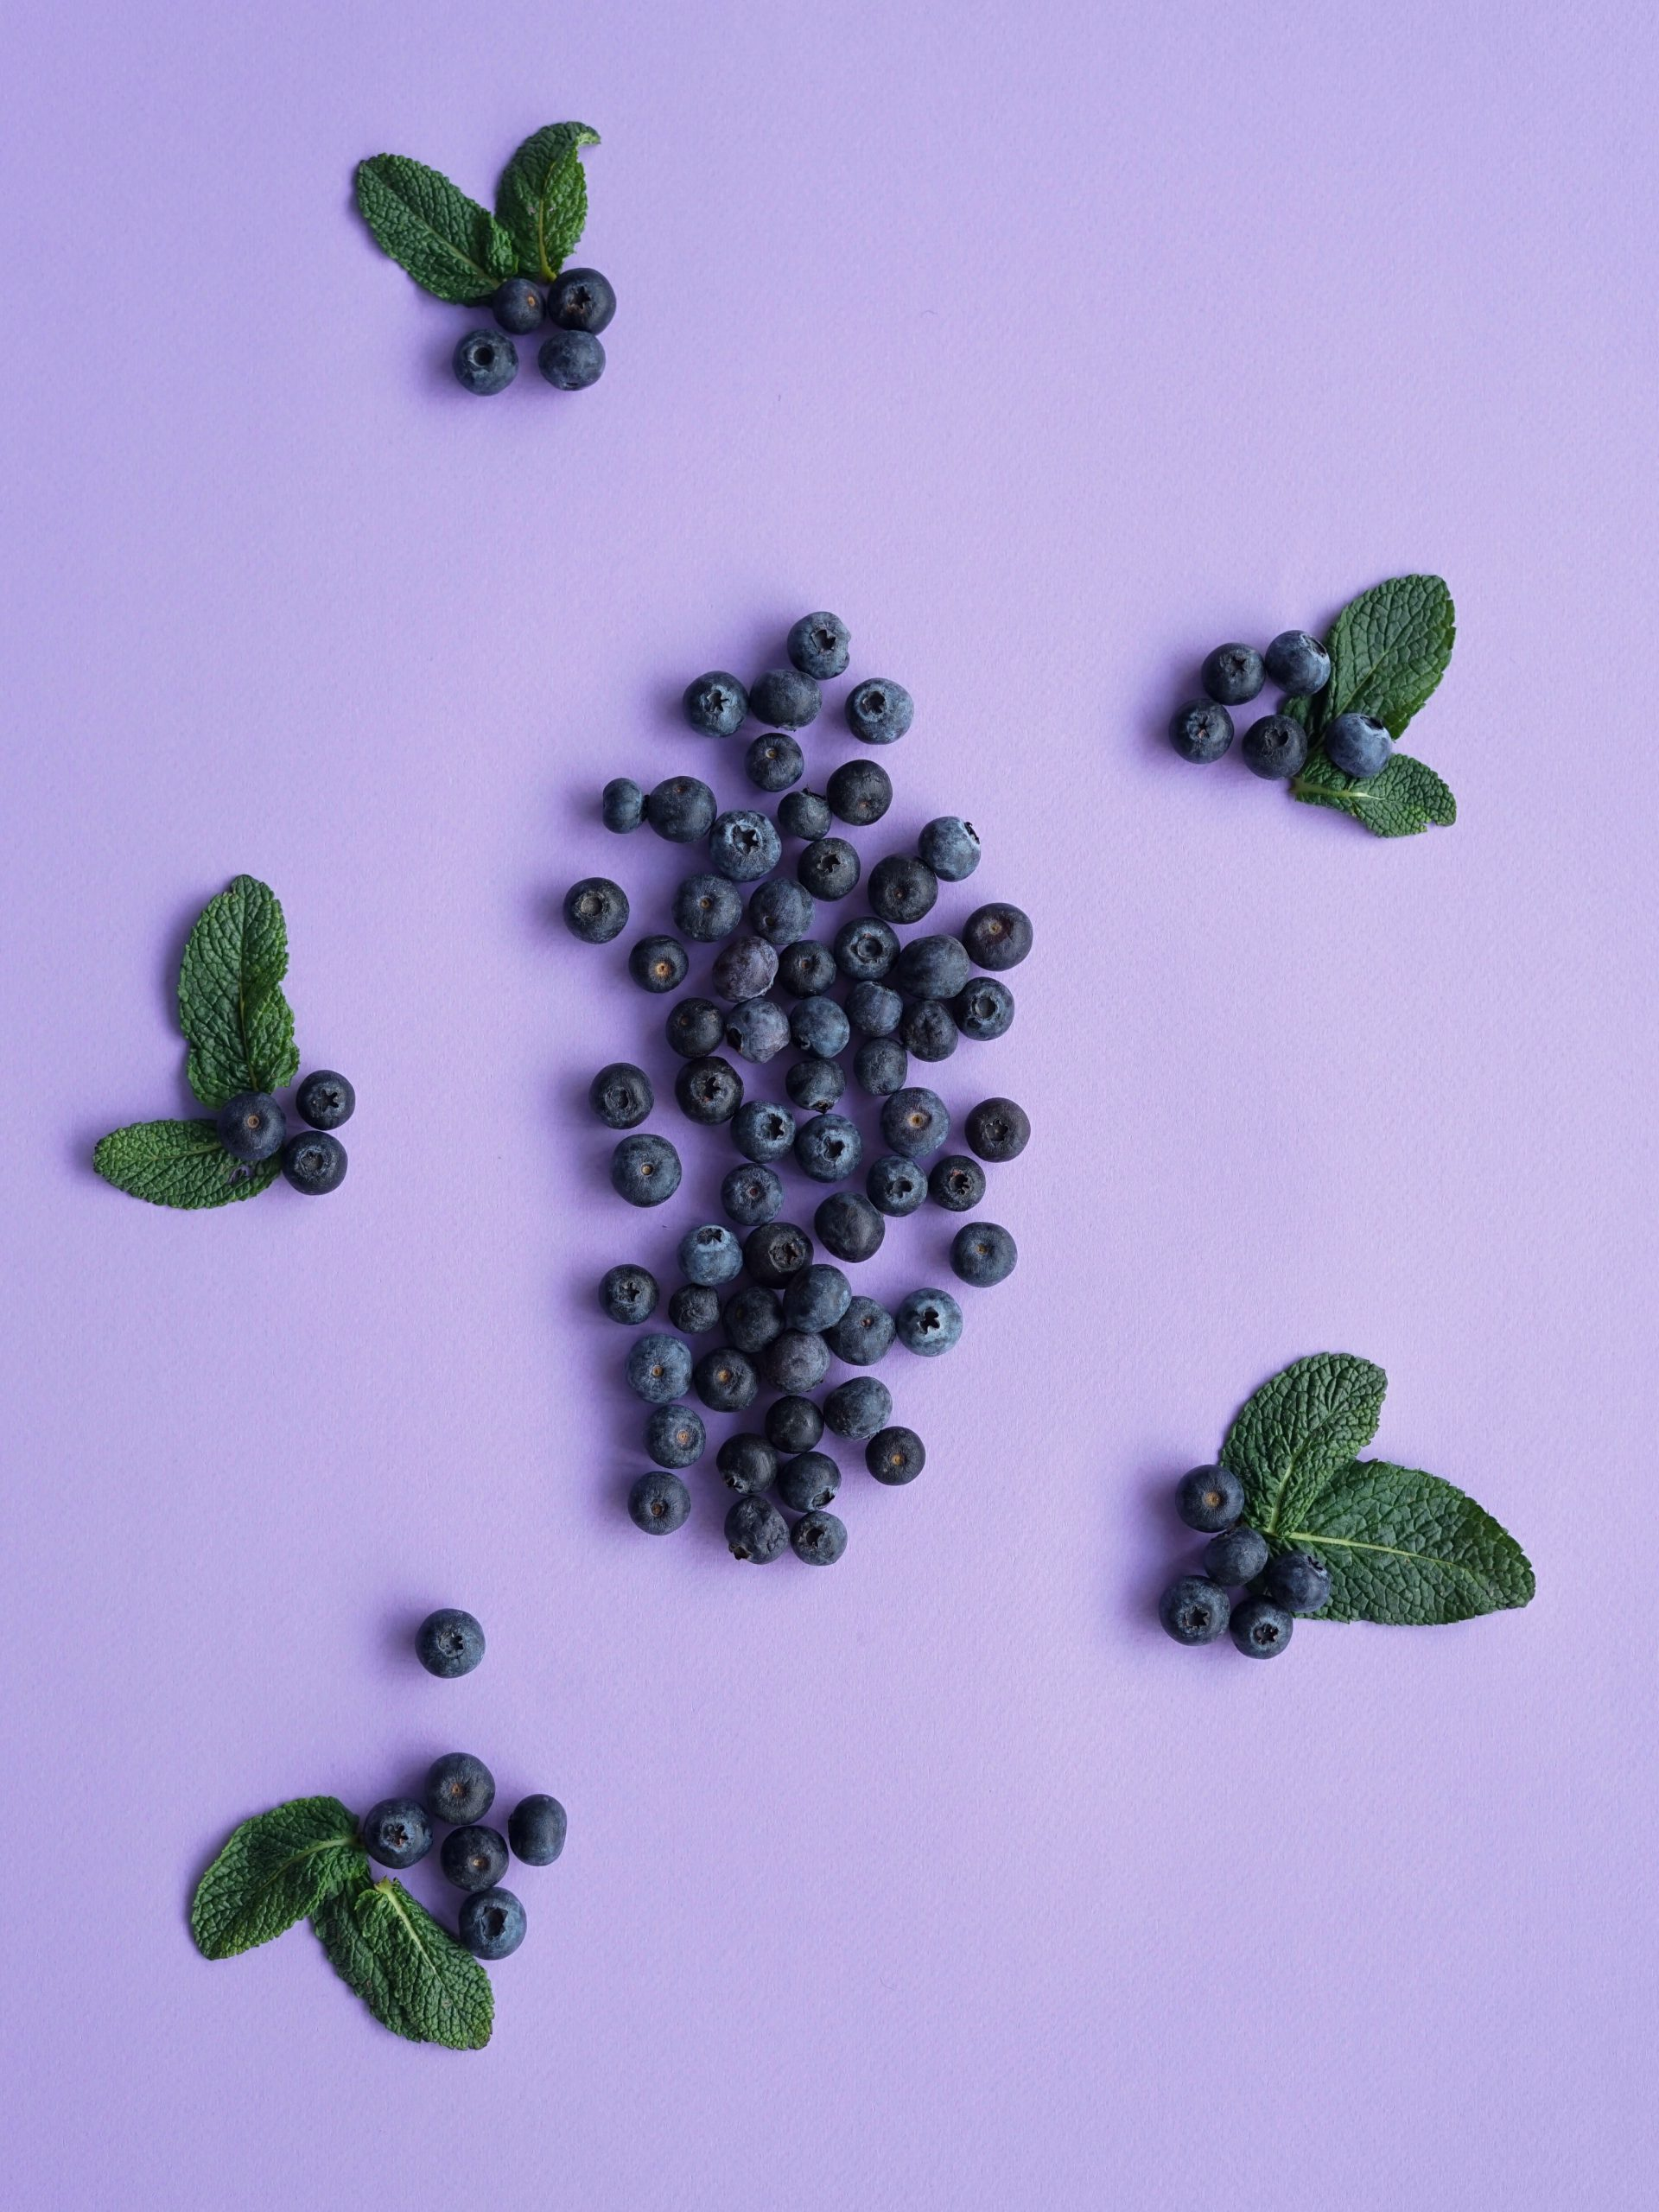 11 benefits of blueberries – backed by science (and 3 delicious blueberry recipes)